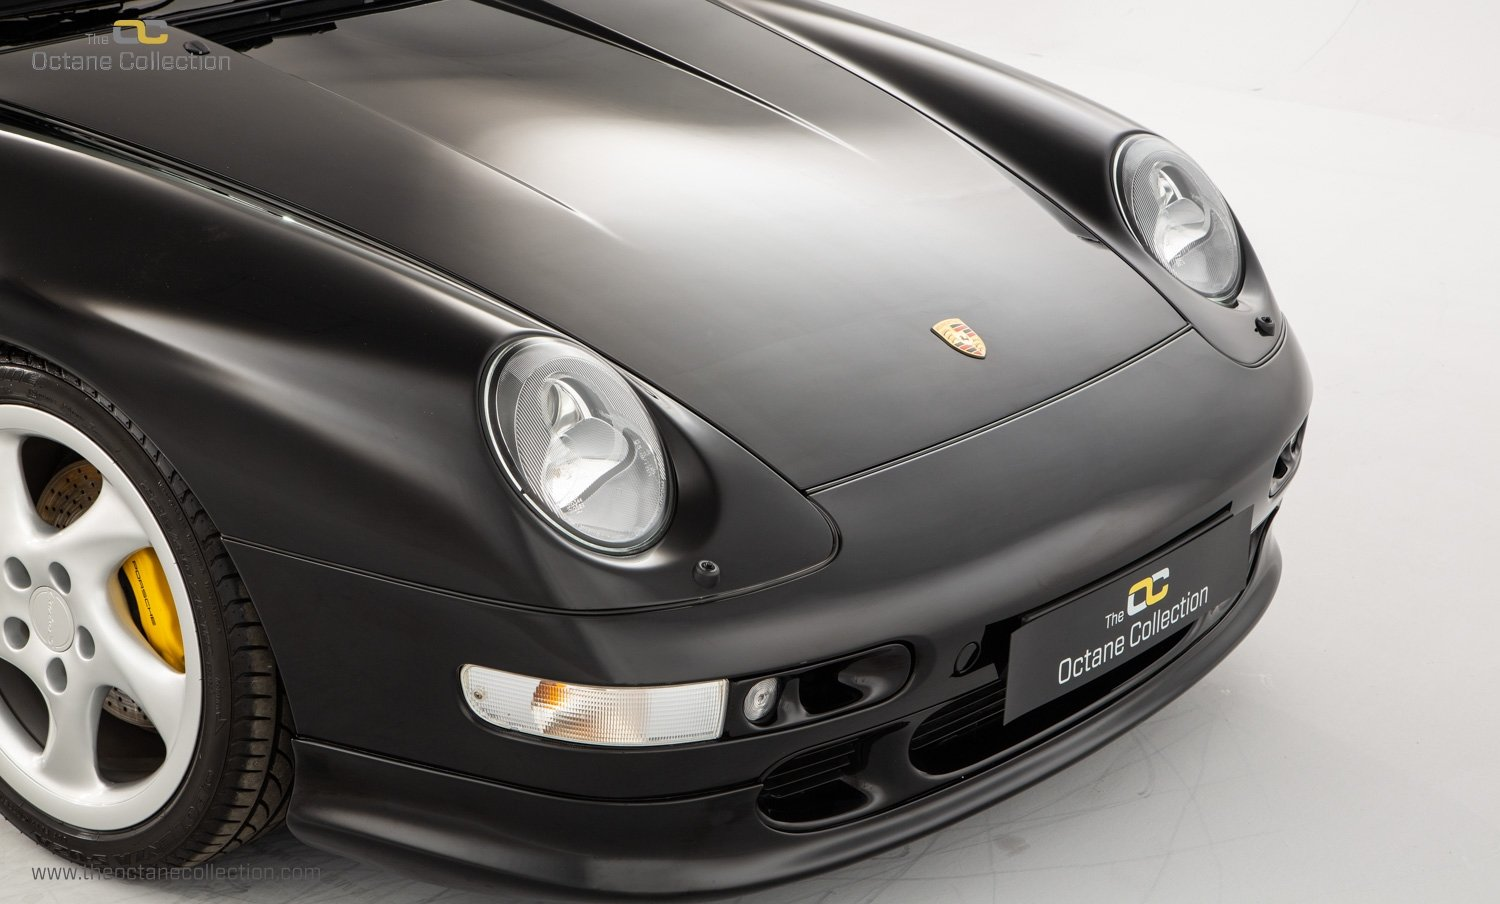 1998 PORSCHE 993 TURBO S // 1 OF 23 RHD CARS // UK C16 // FPSH For Sale (picture 6 of 24)